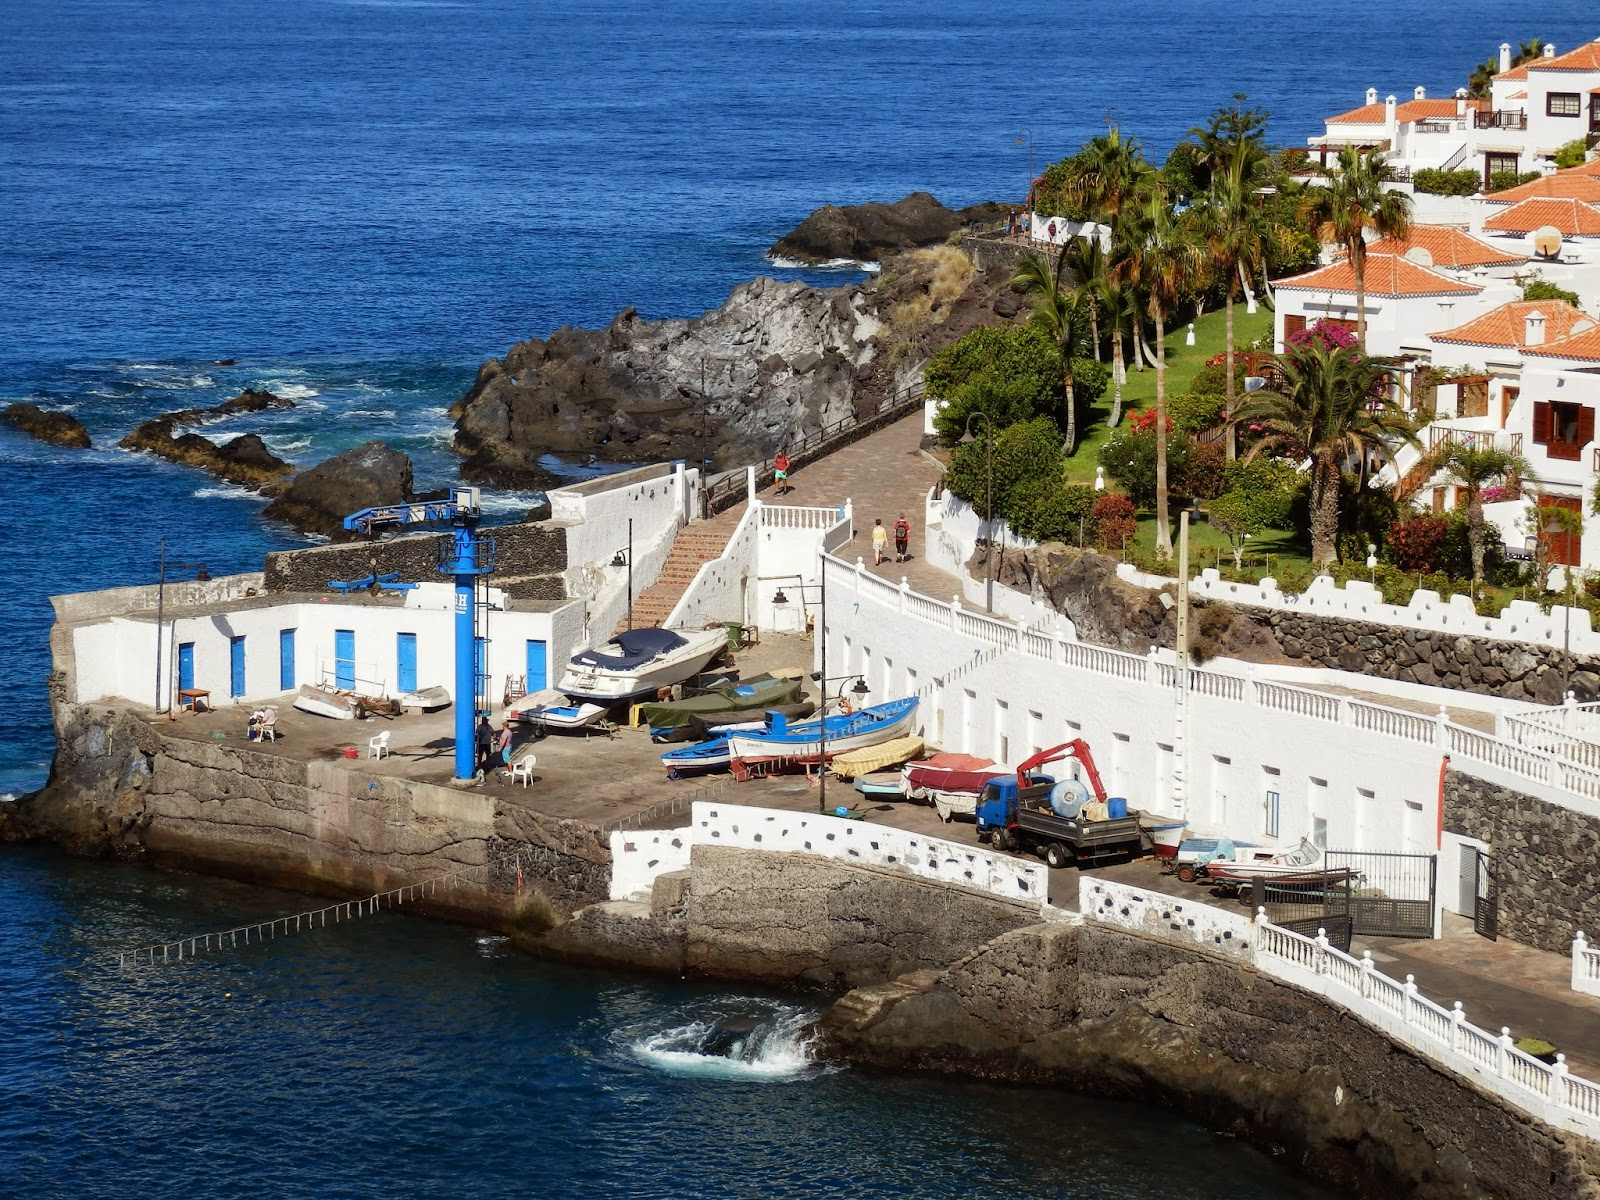 Puerto Santiago, Tenerife, Canary Islands